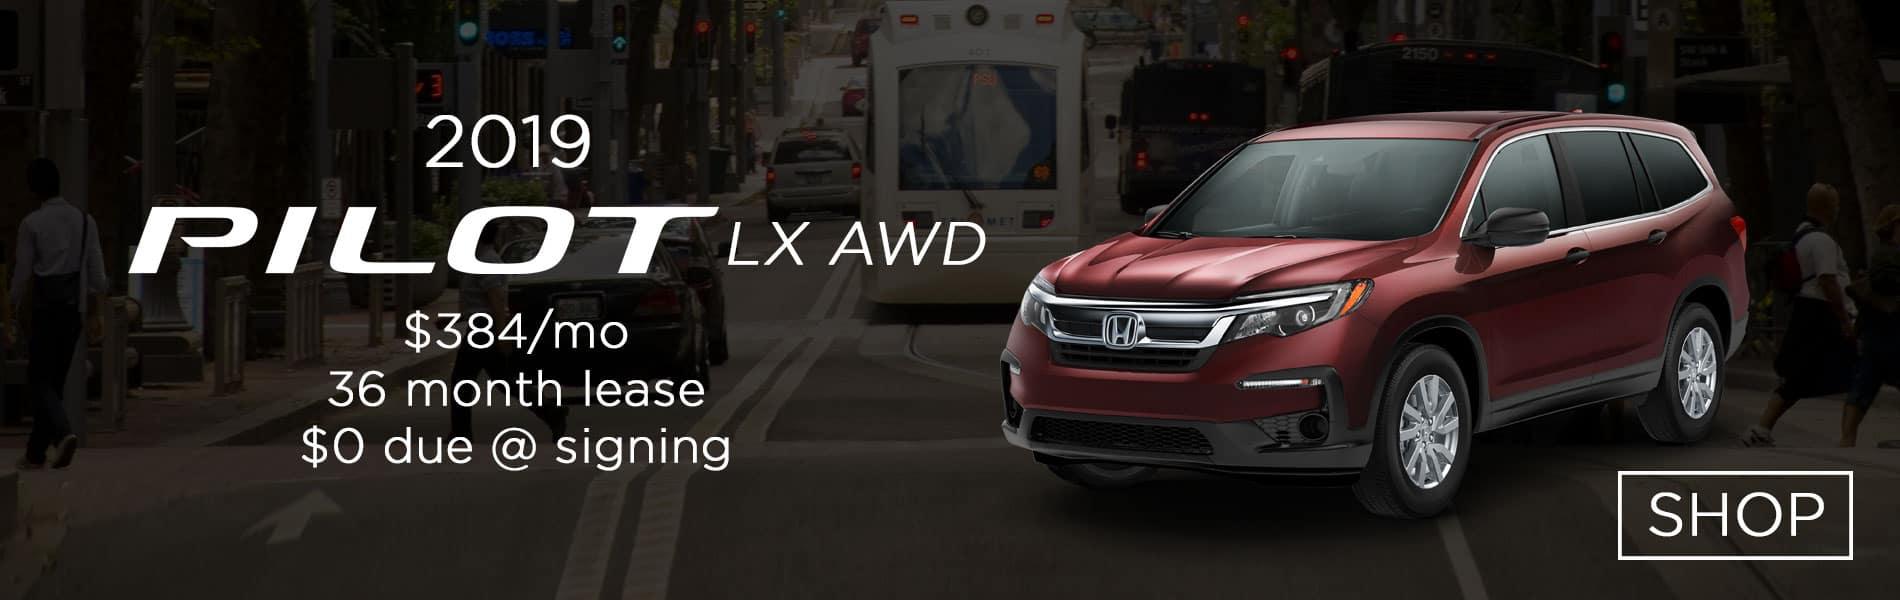 Lease a 2019 Honda Pilot LX AWD for $384 per month lease with $0 due at signing